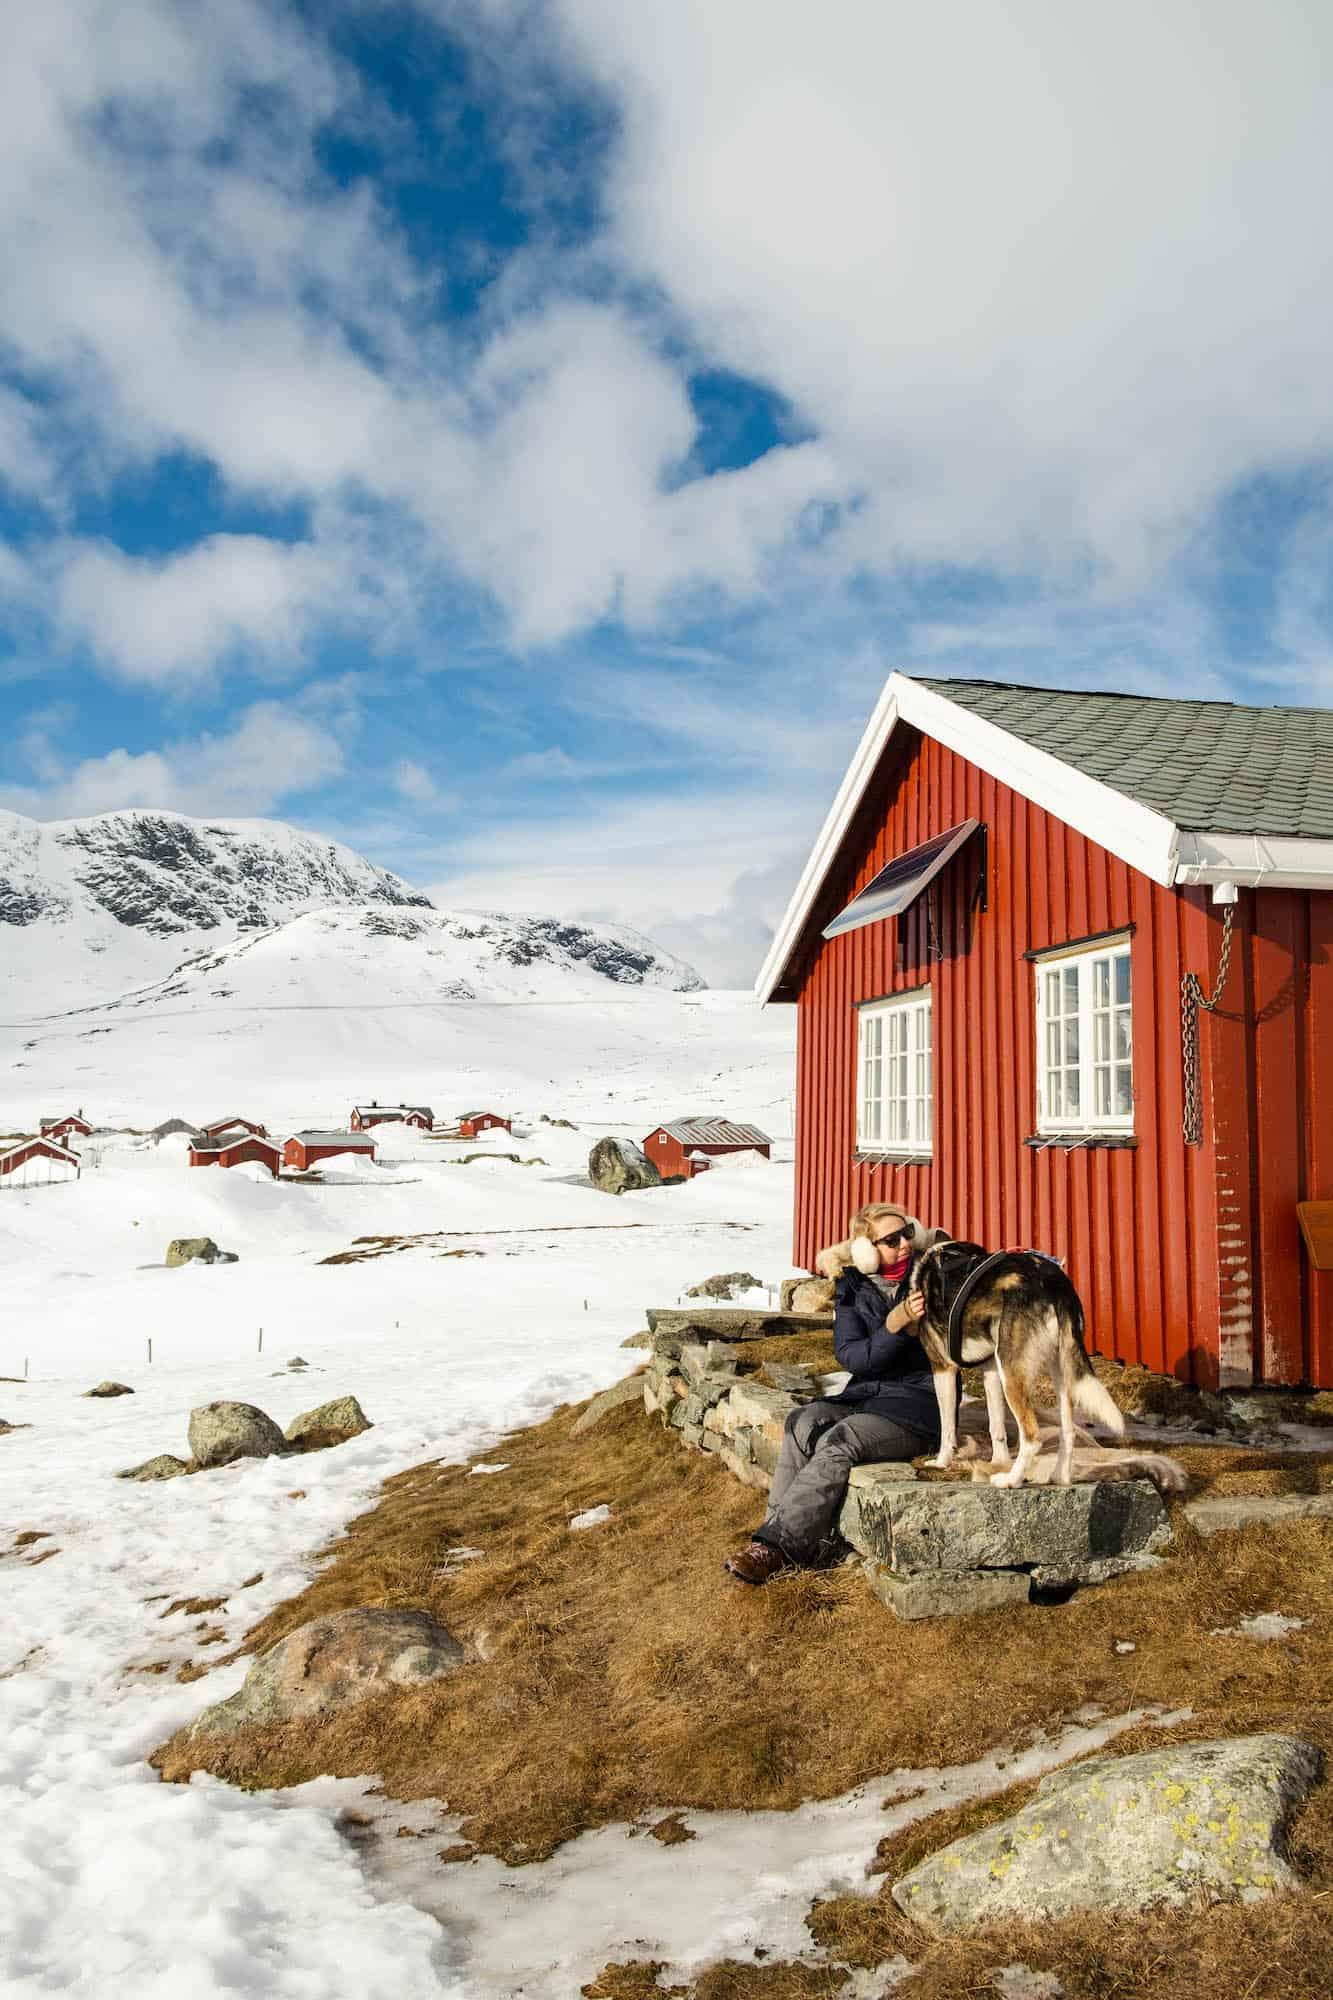 Cabin — Dog Sled — Winter in Norway